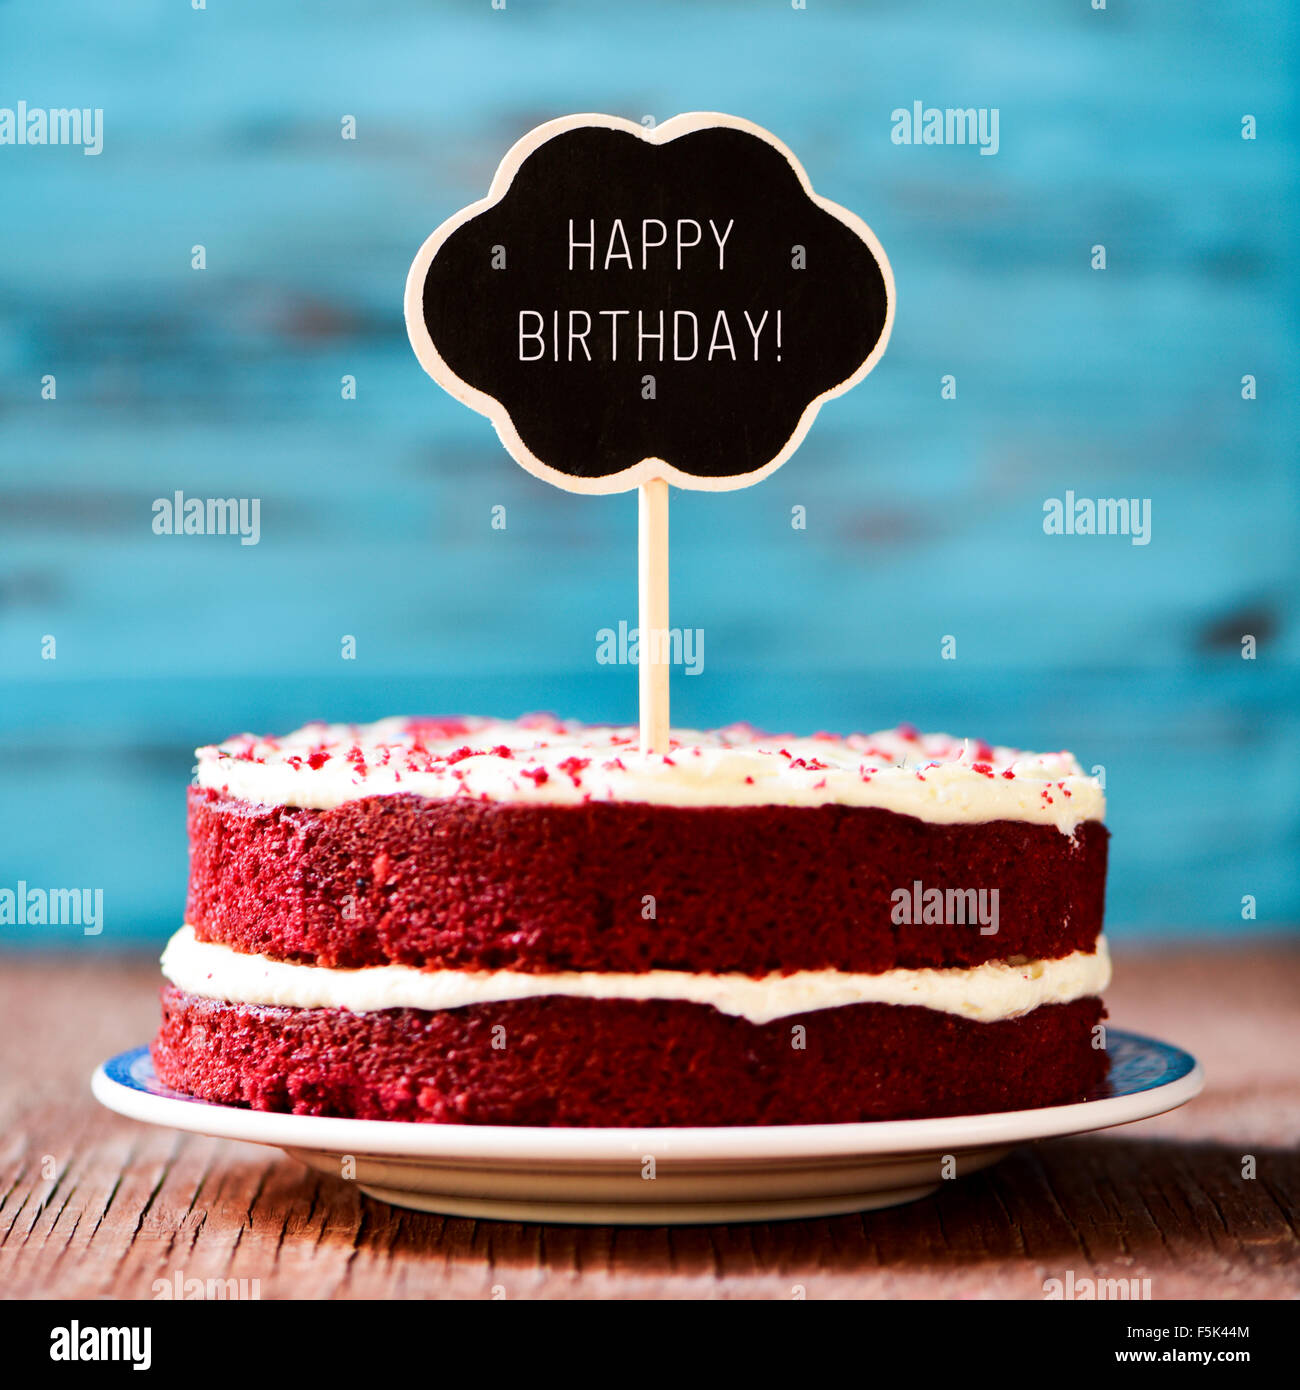 a red velvet cake with a chalkboard in the shape of a thought bubble with the text happy birthday, on a rustic wooden - Stock Image